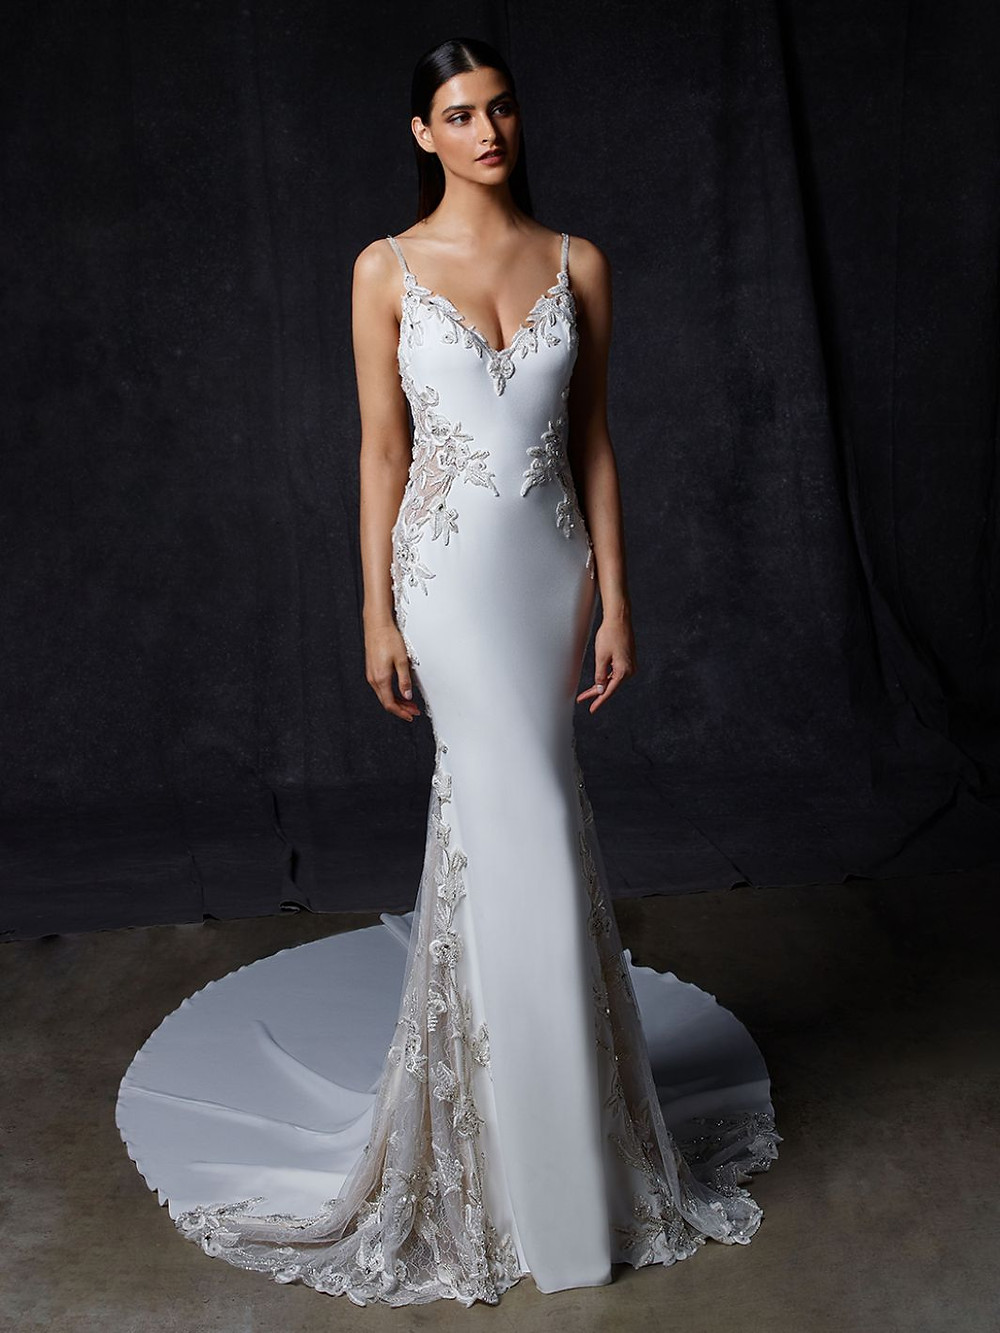 An Enzoani silk mermaid wedding dress with lace, thin straps and a long train